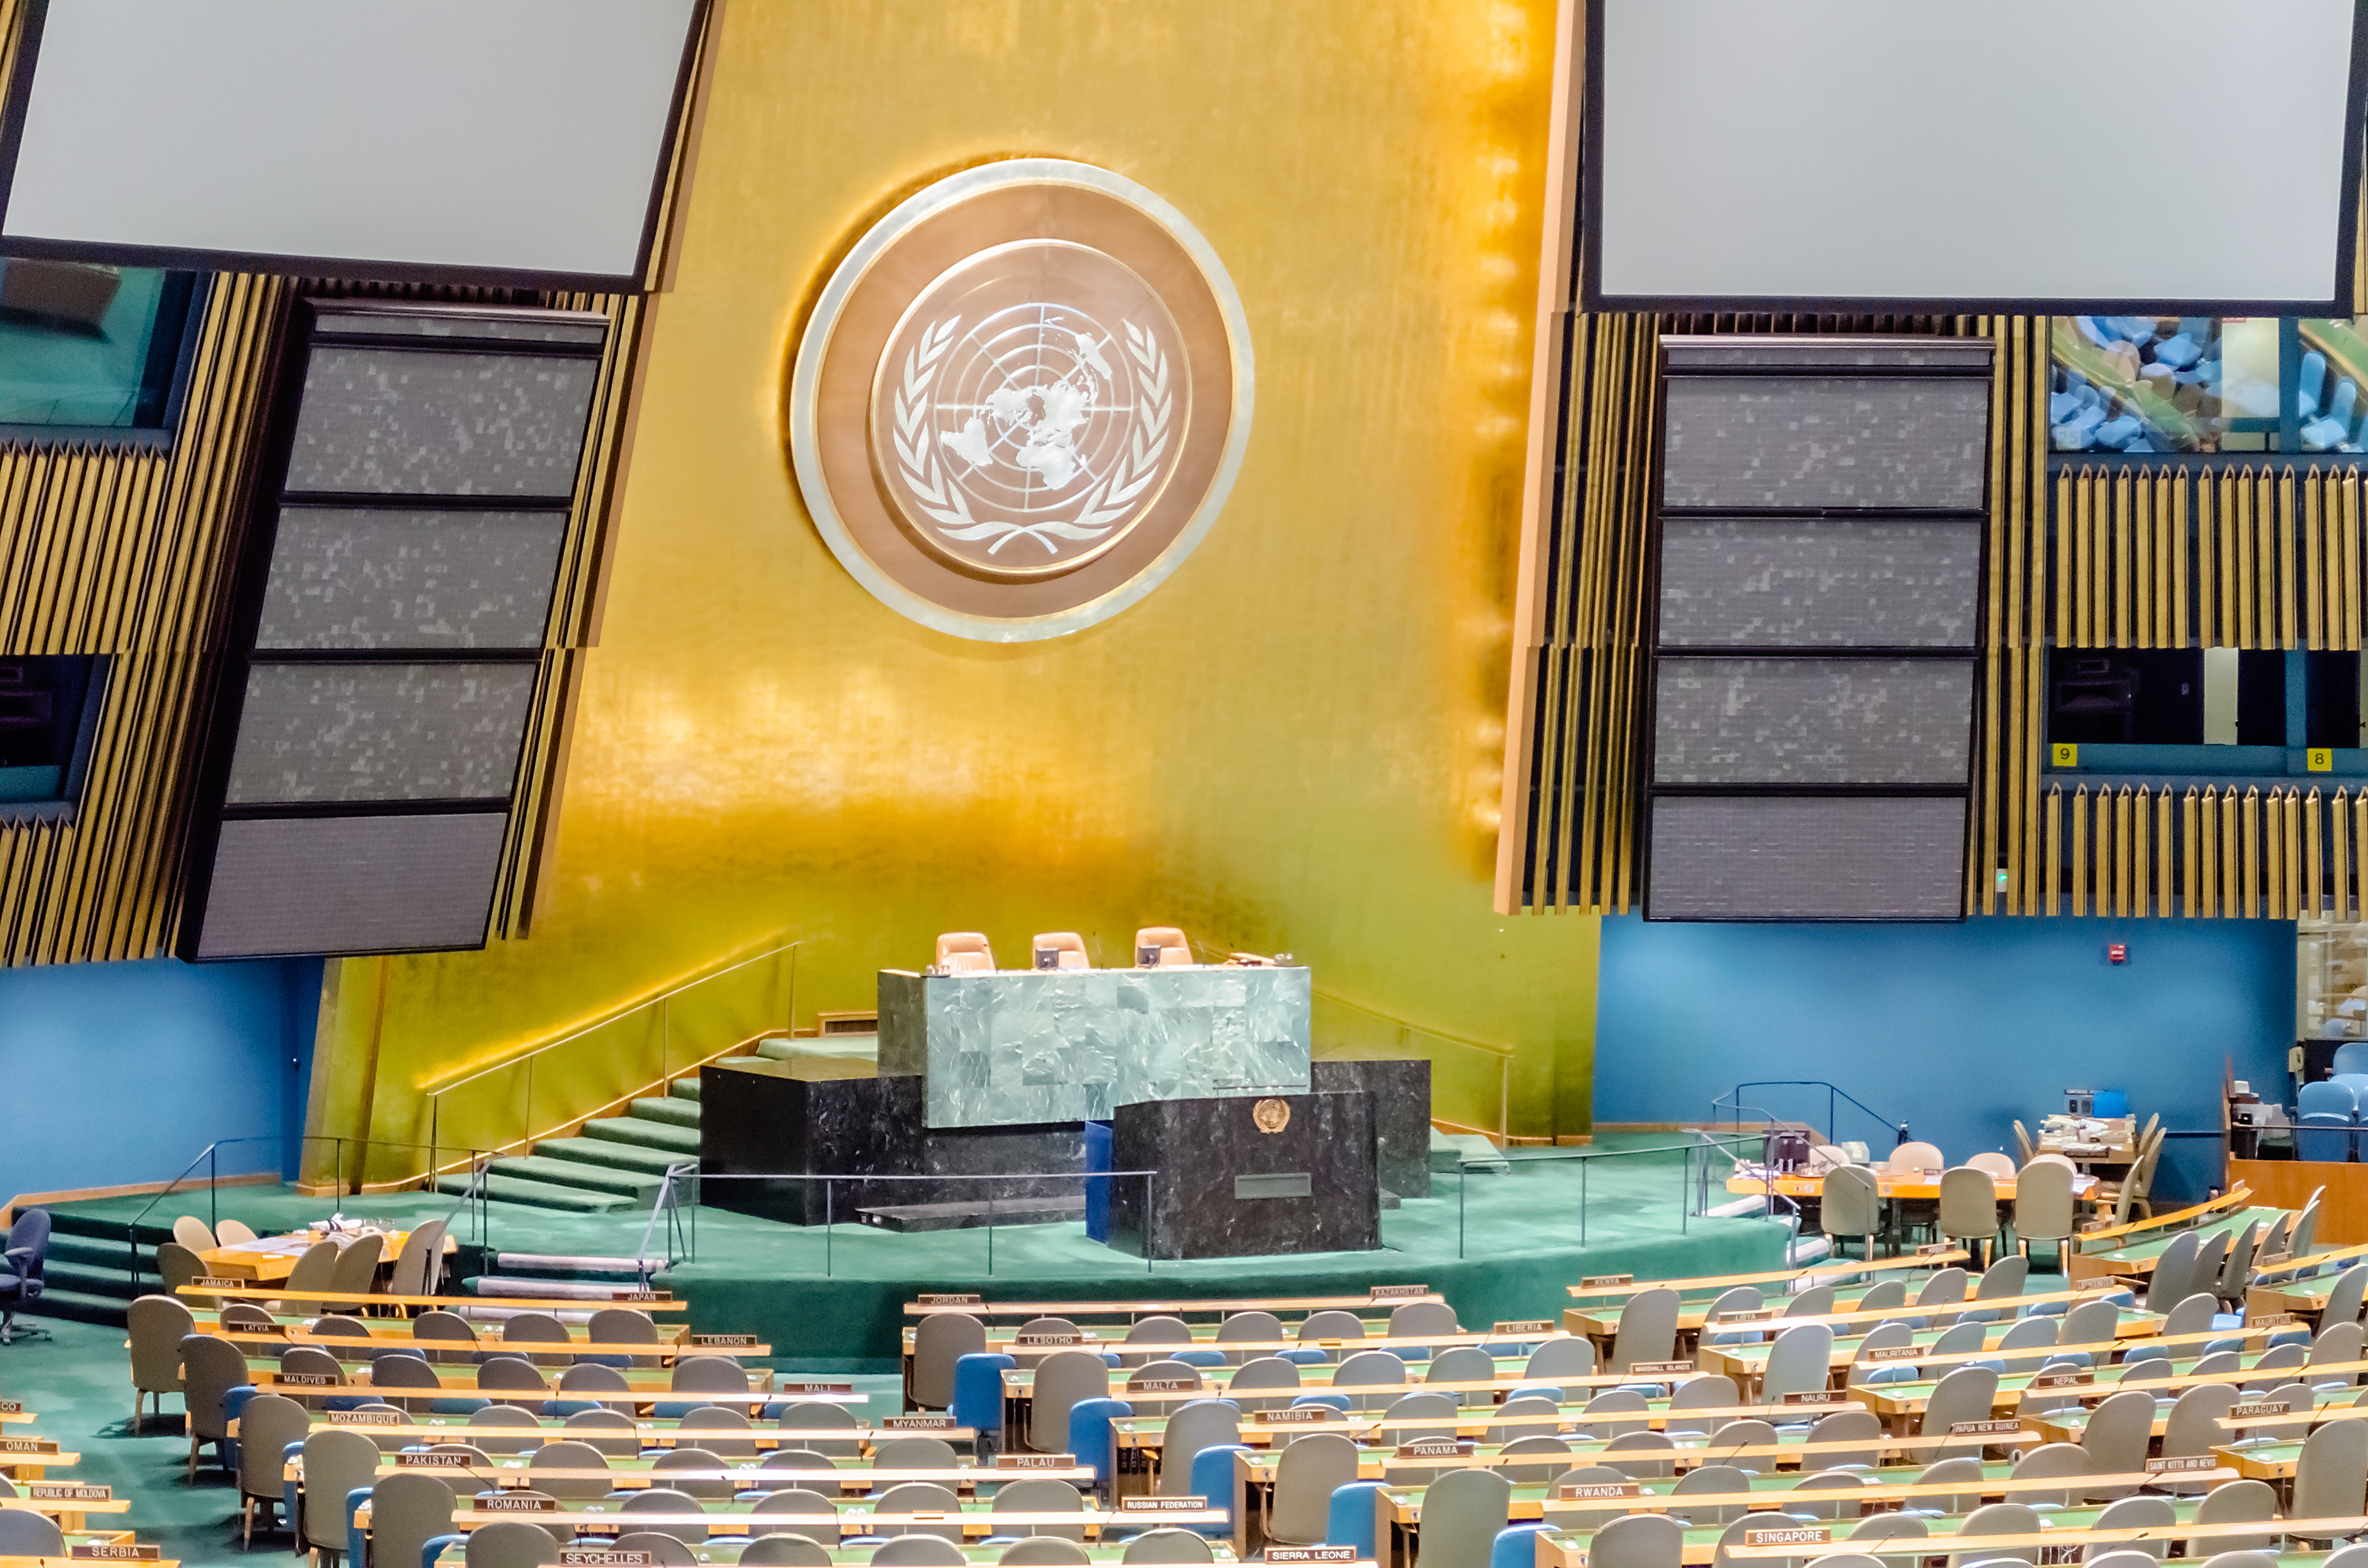 UN Assembly hall